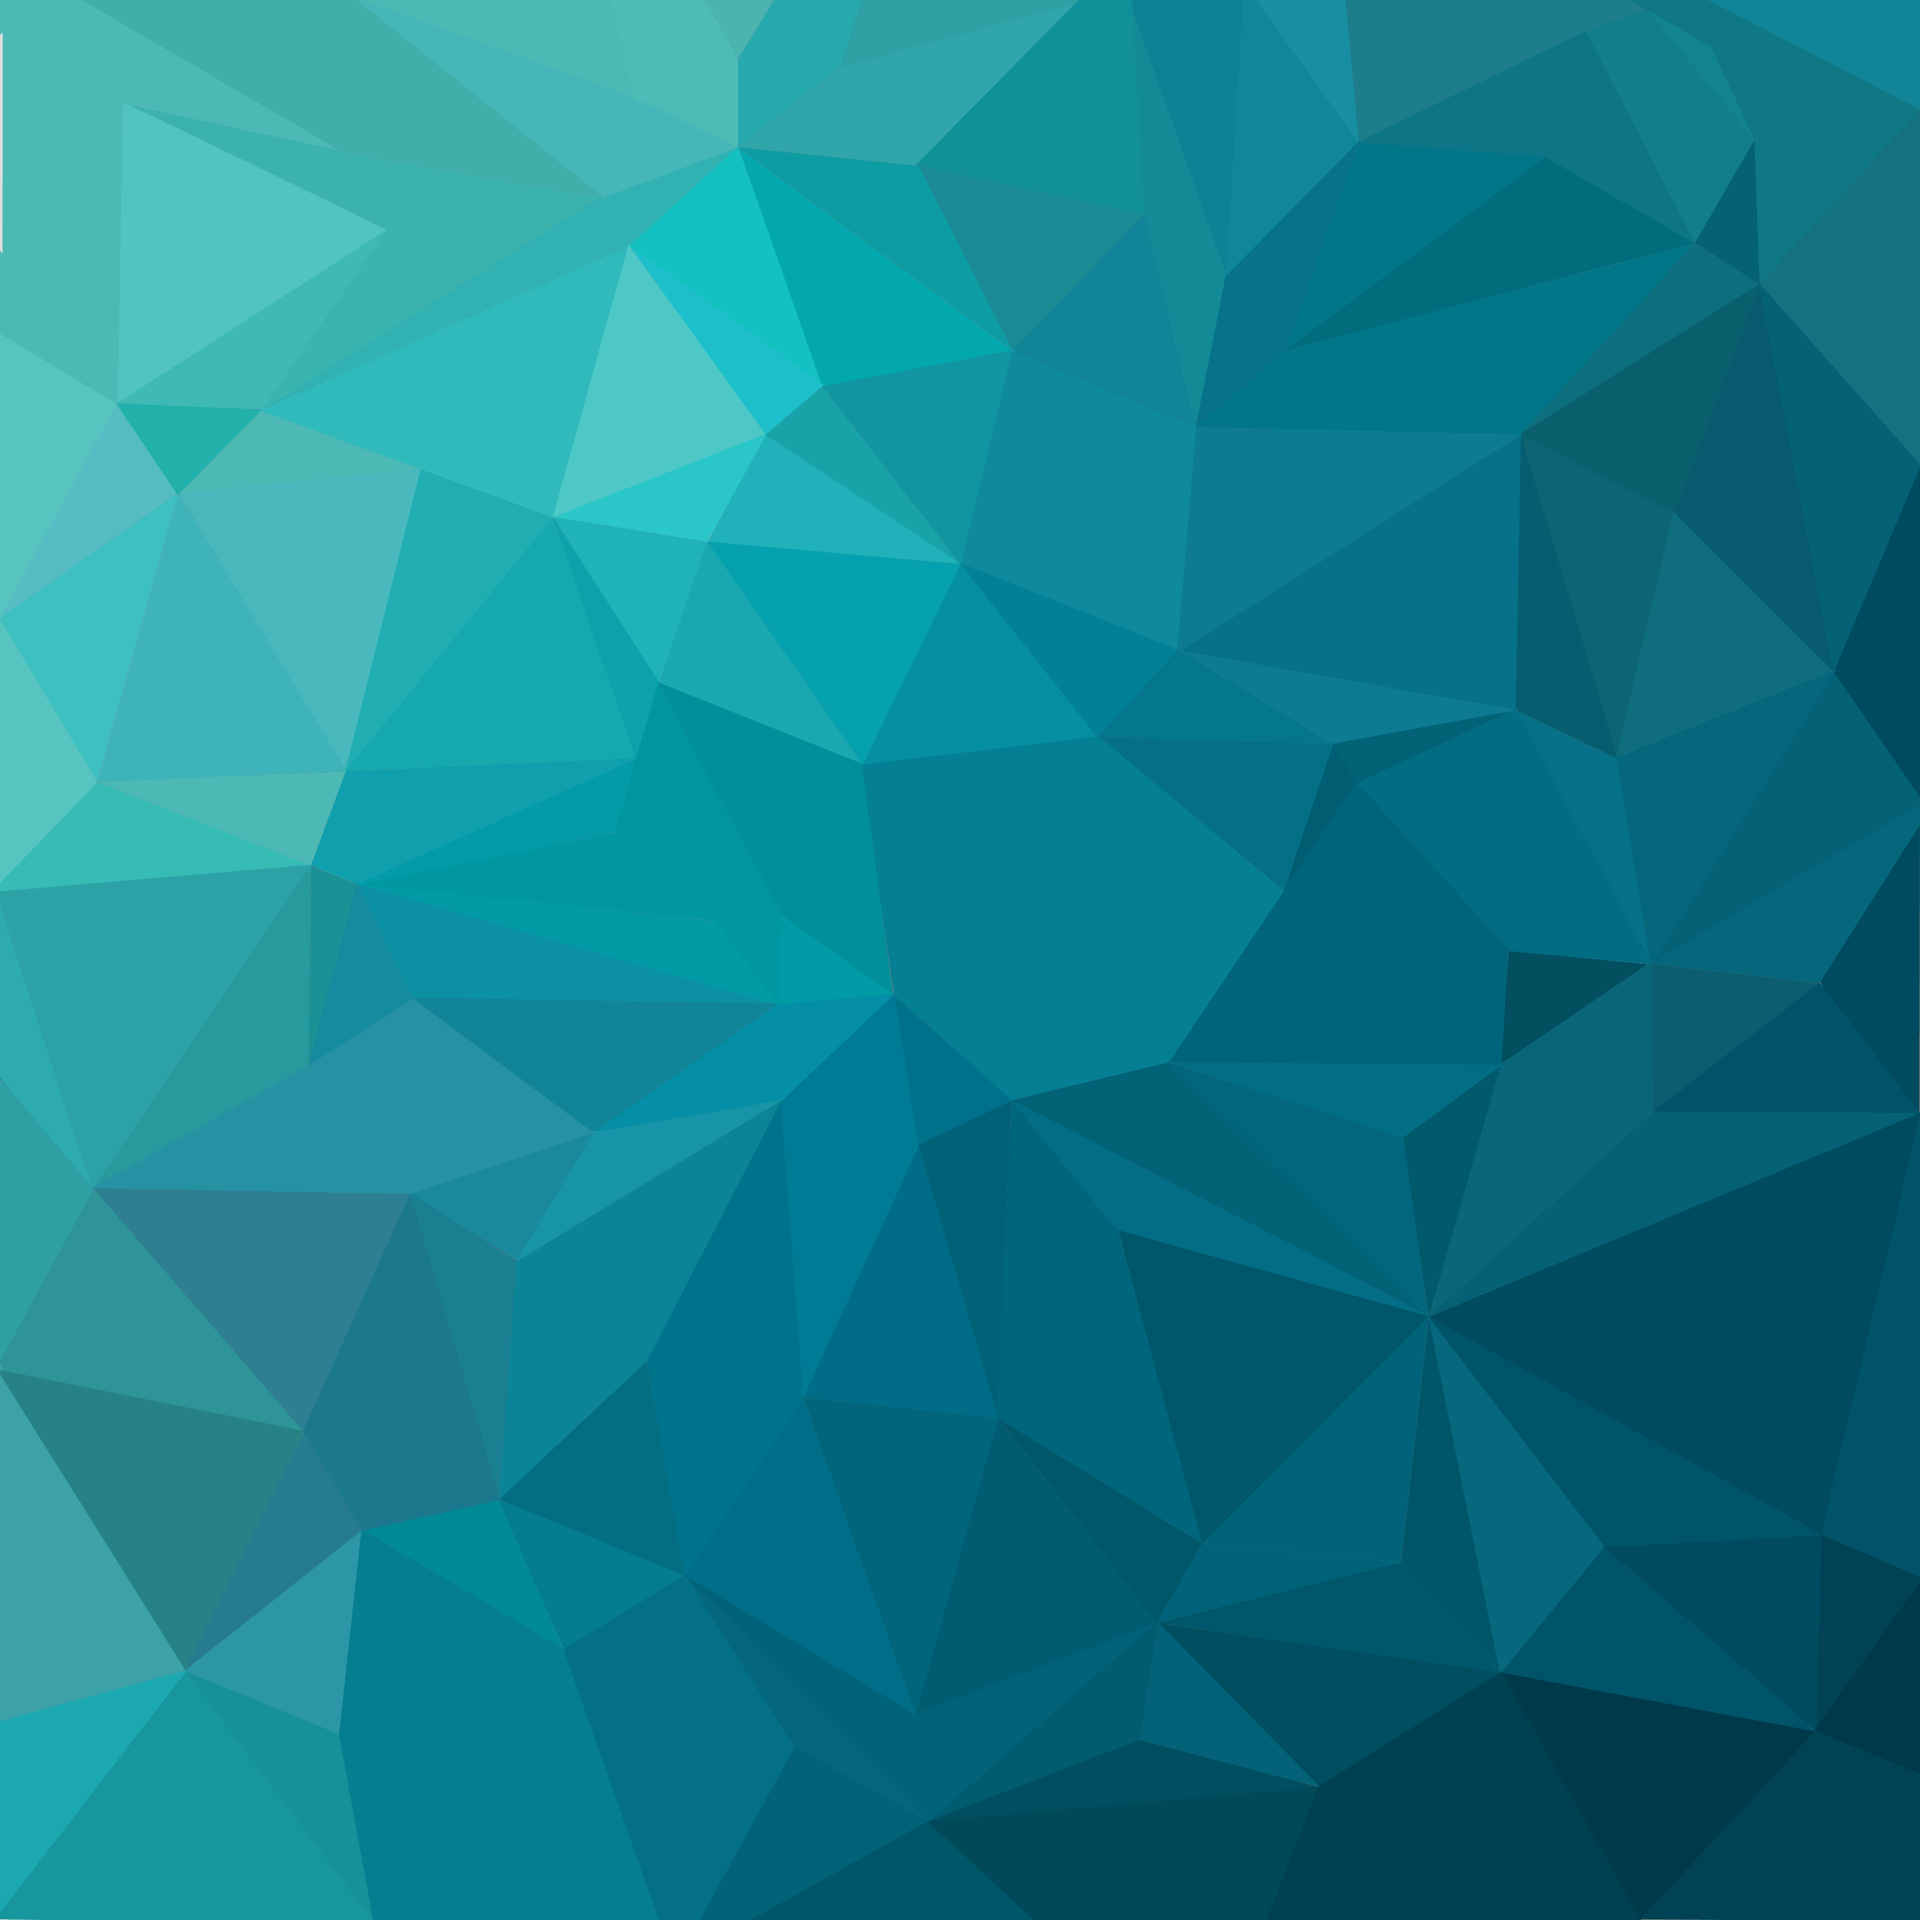 S5 Stock Wallpapers